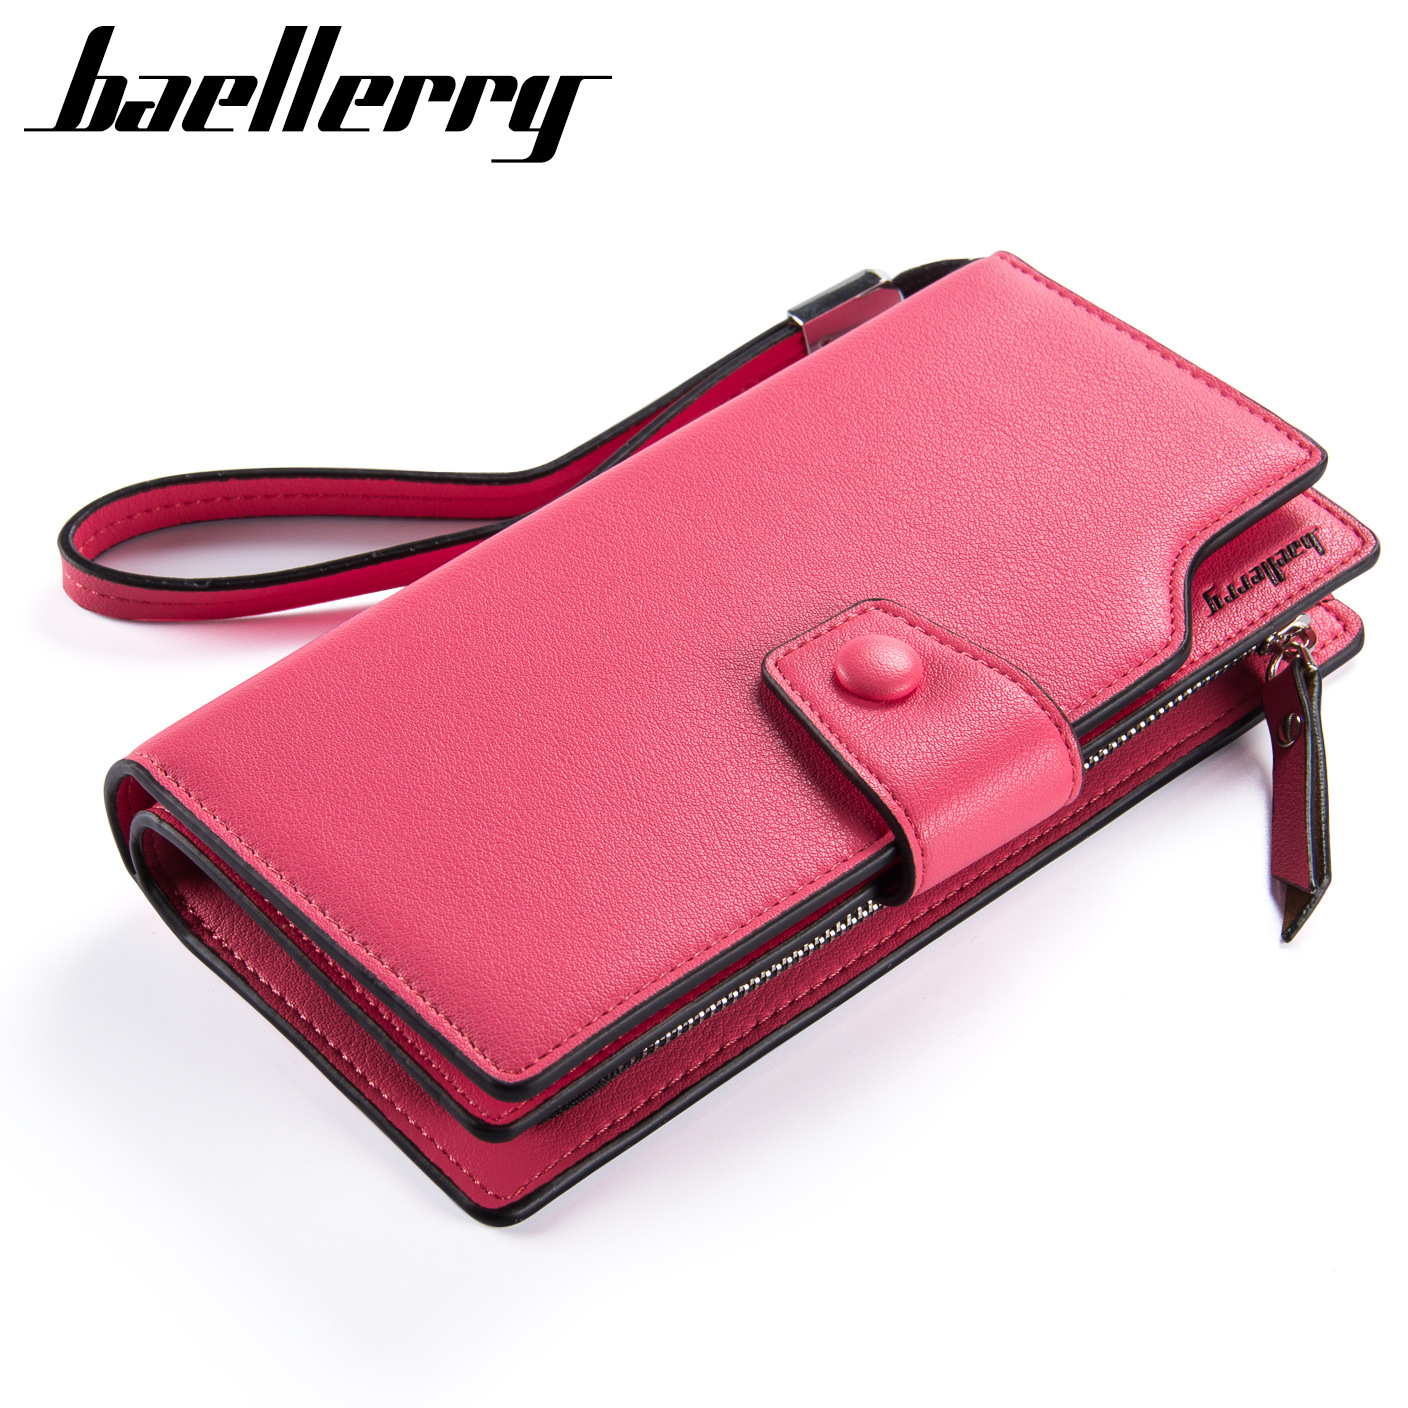 2018 Baellerry Long Women Fashion Leather Wallet Multifunctional Large Capacity Female Purse Exquisite Evening Clutch Bag n64008